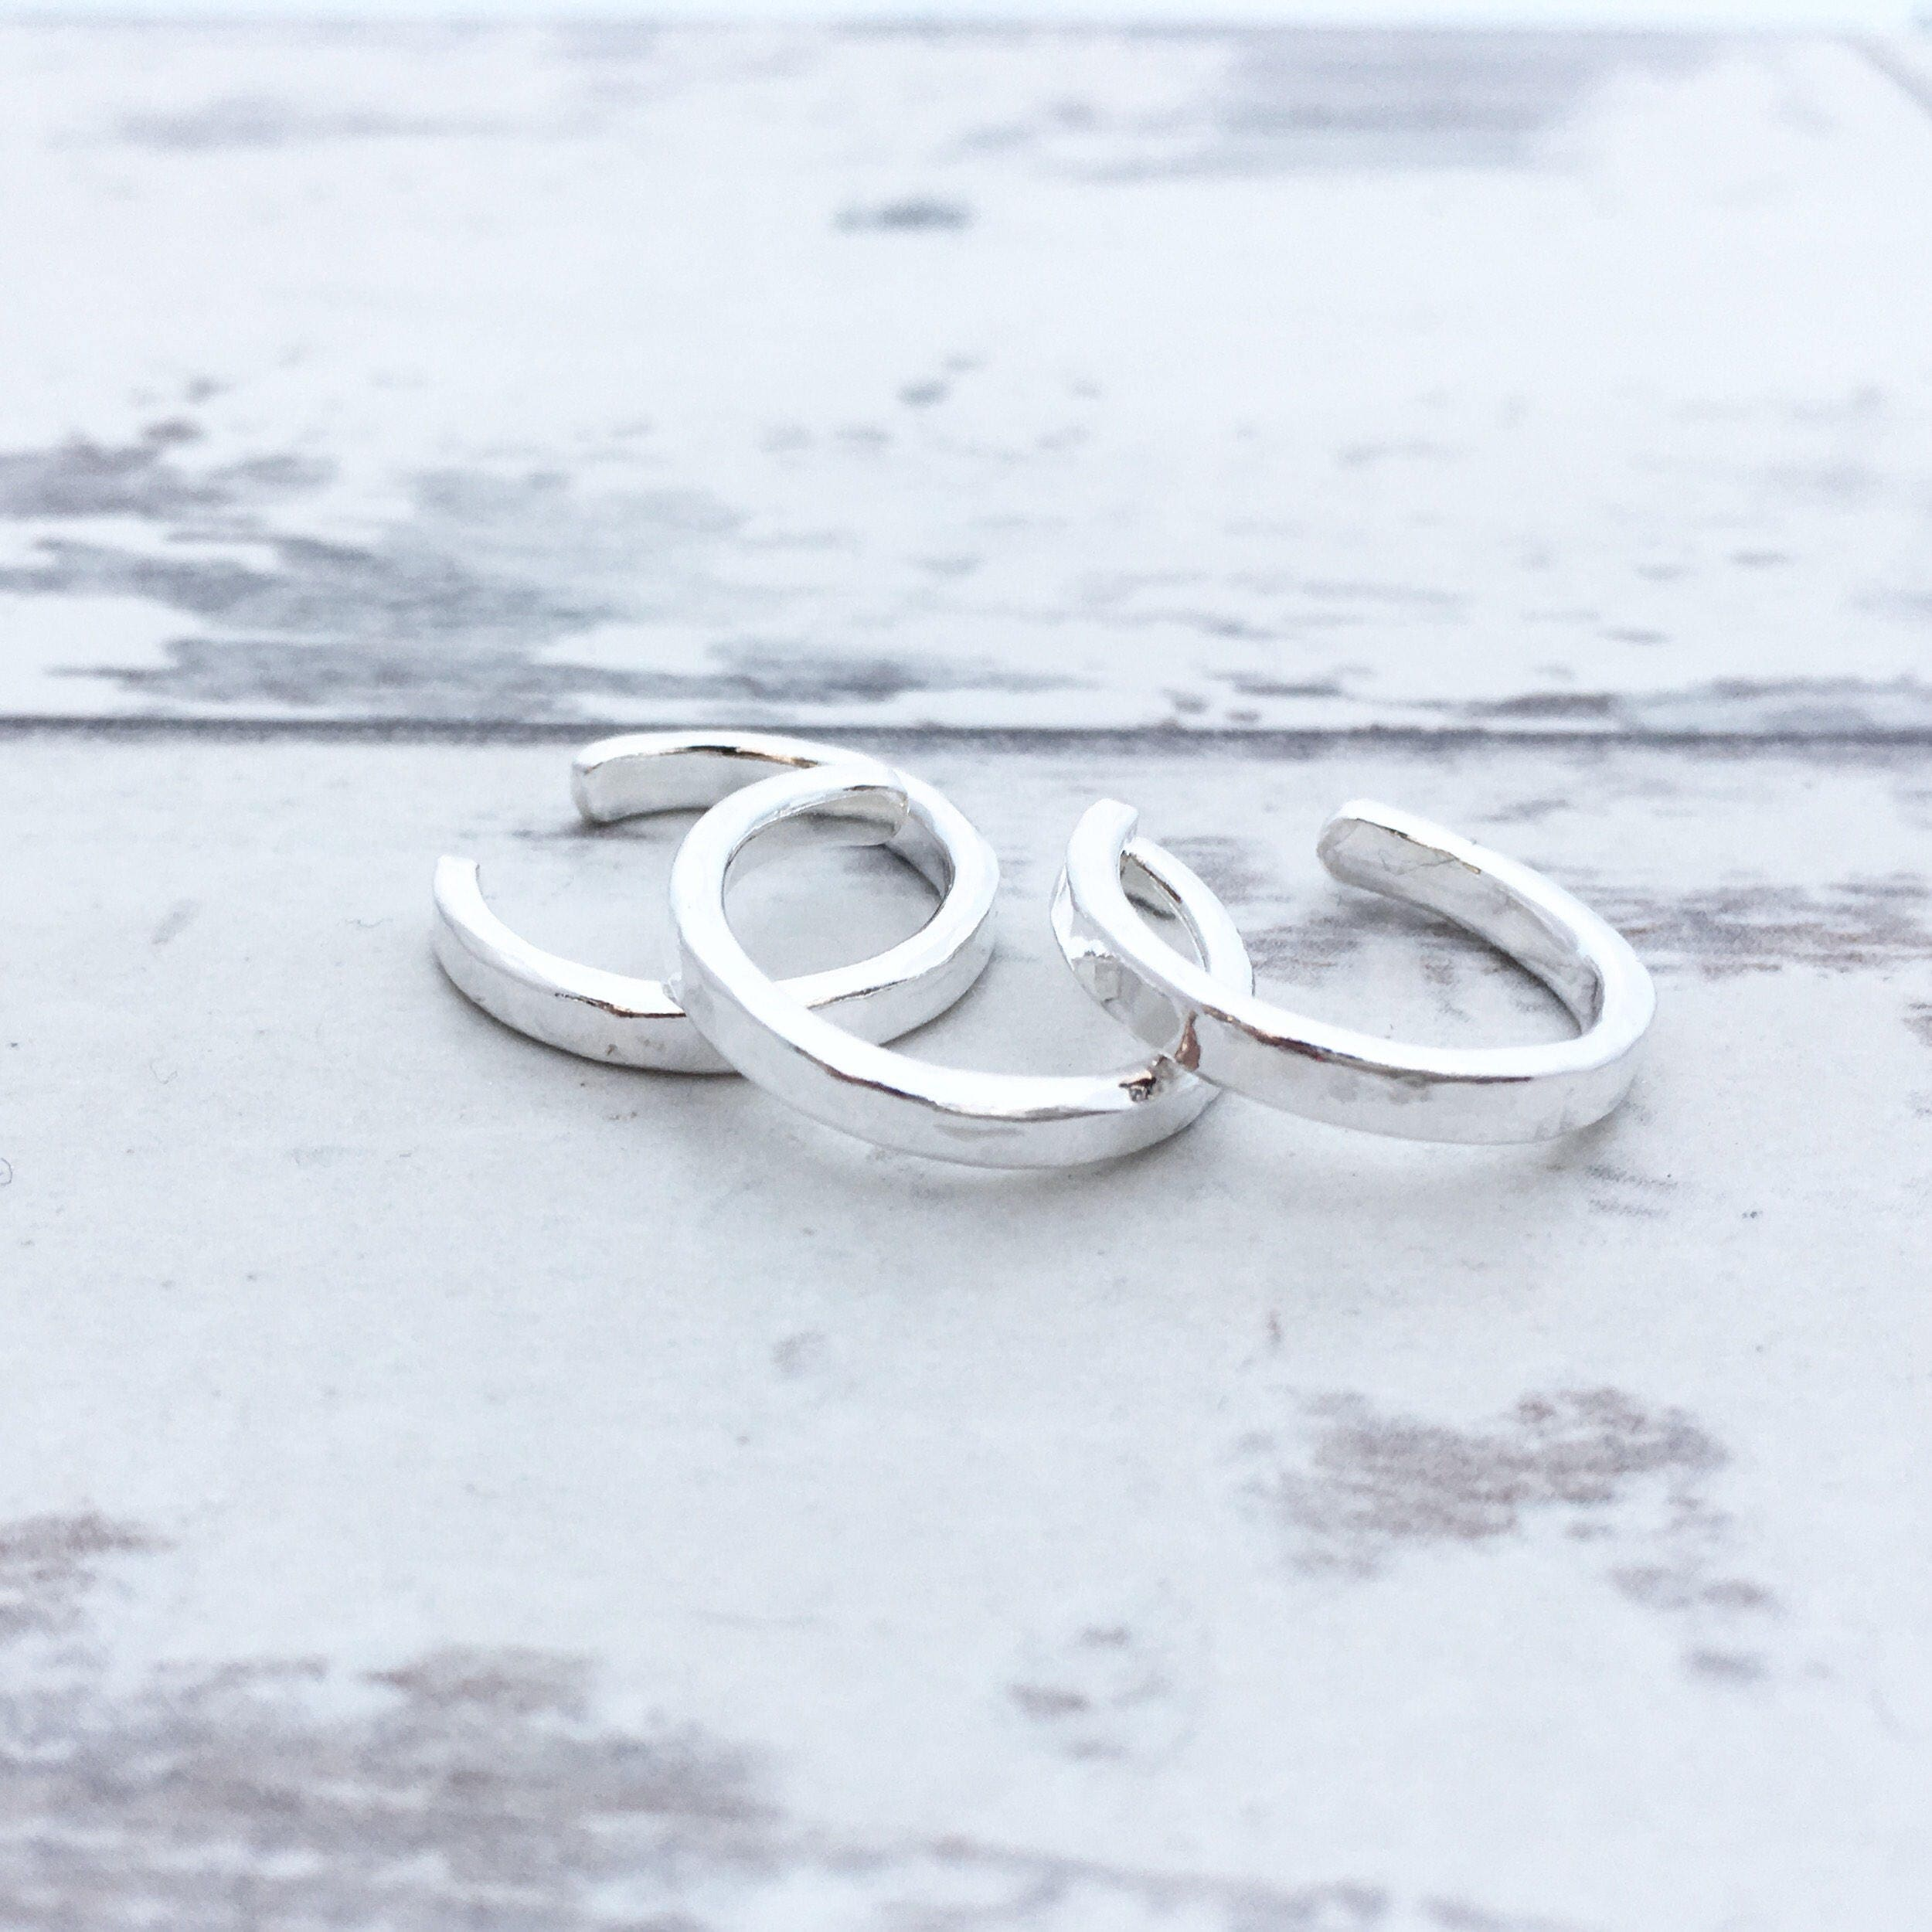 Toe Ring Sterling Silver Toe Ring Hammered Silver Toe Ring Summer fashion Body Jewellery Boho Jewellery Adjustable Silver Toe Ring